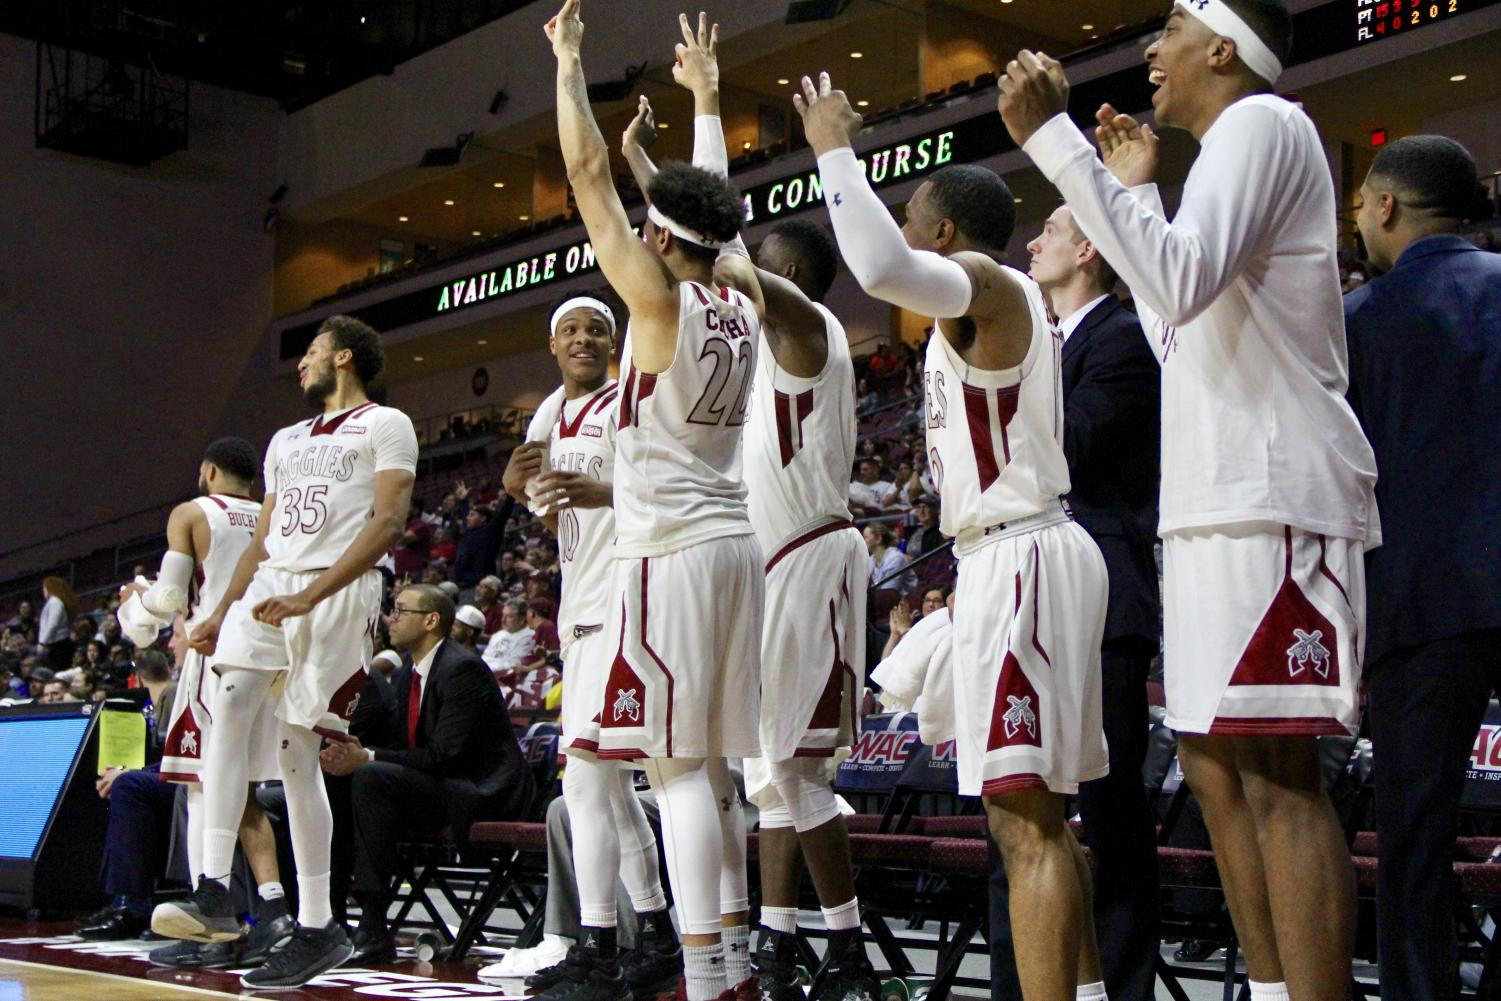 New Mexico State defeated GCU 72-58 winning the WAC tournament championship.